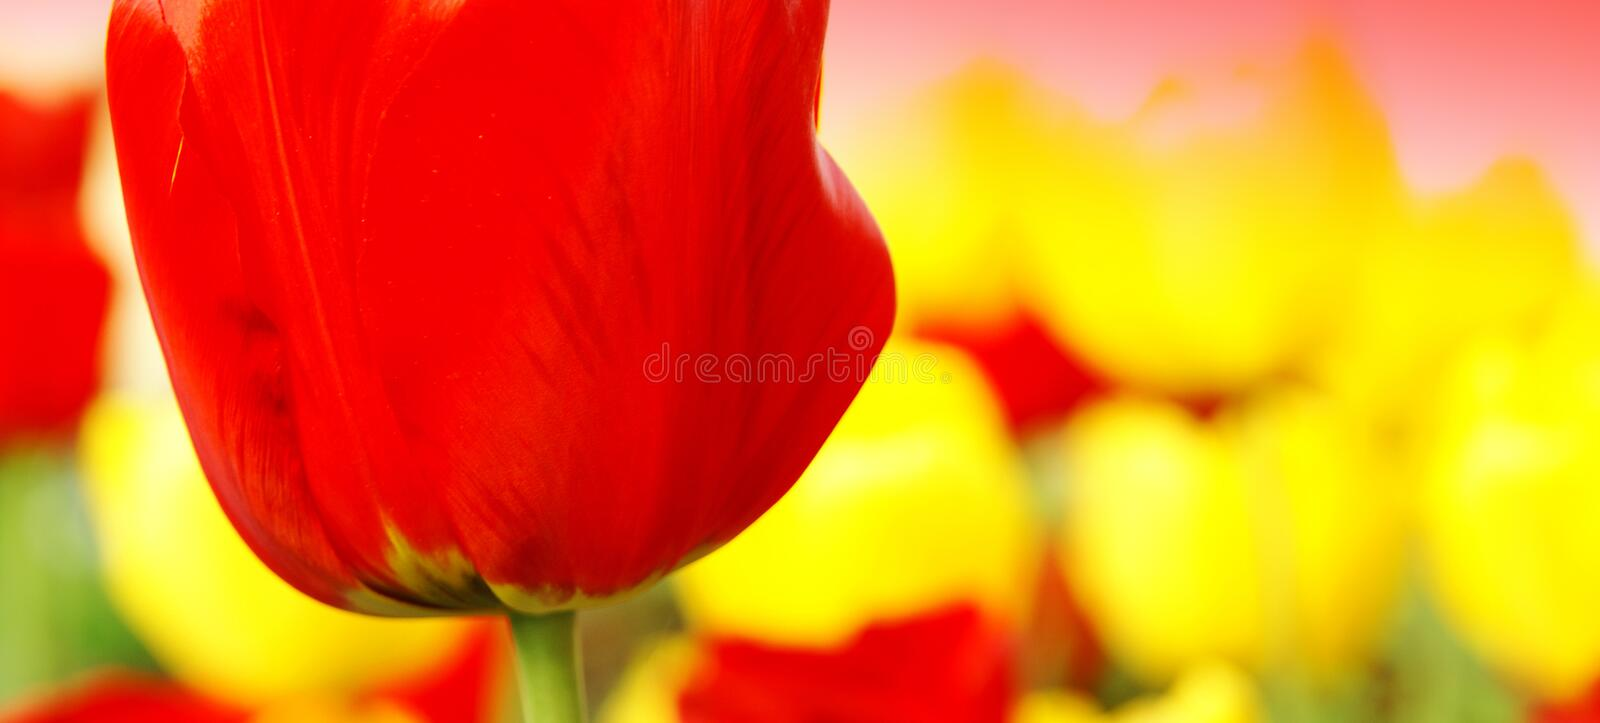 Abstract spring flowers banner royalty free stock photo